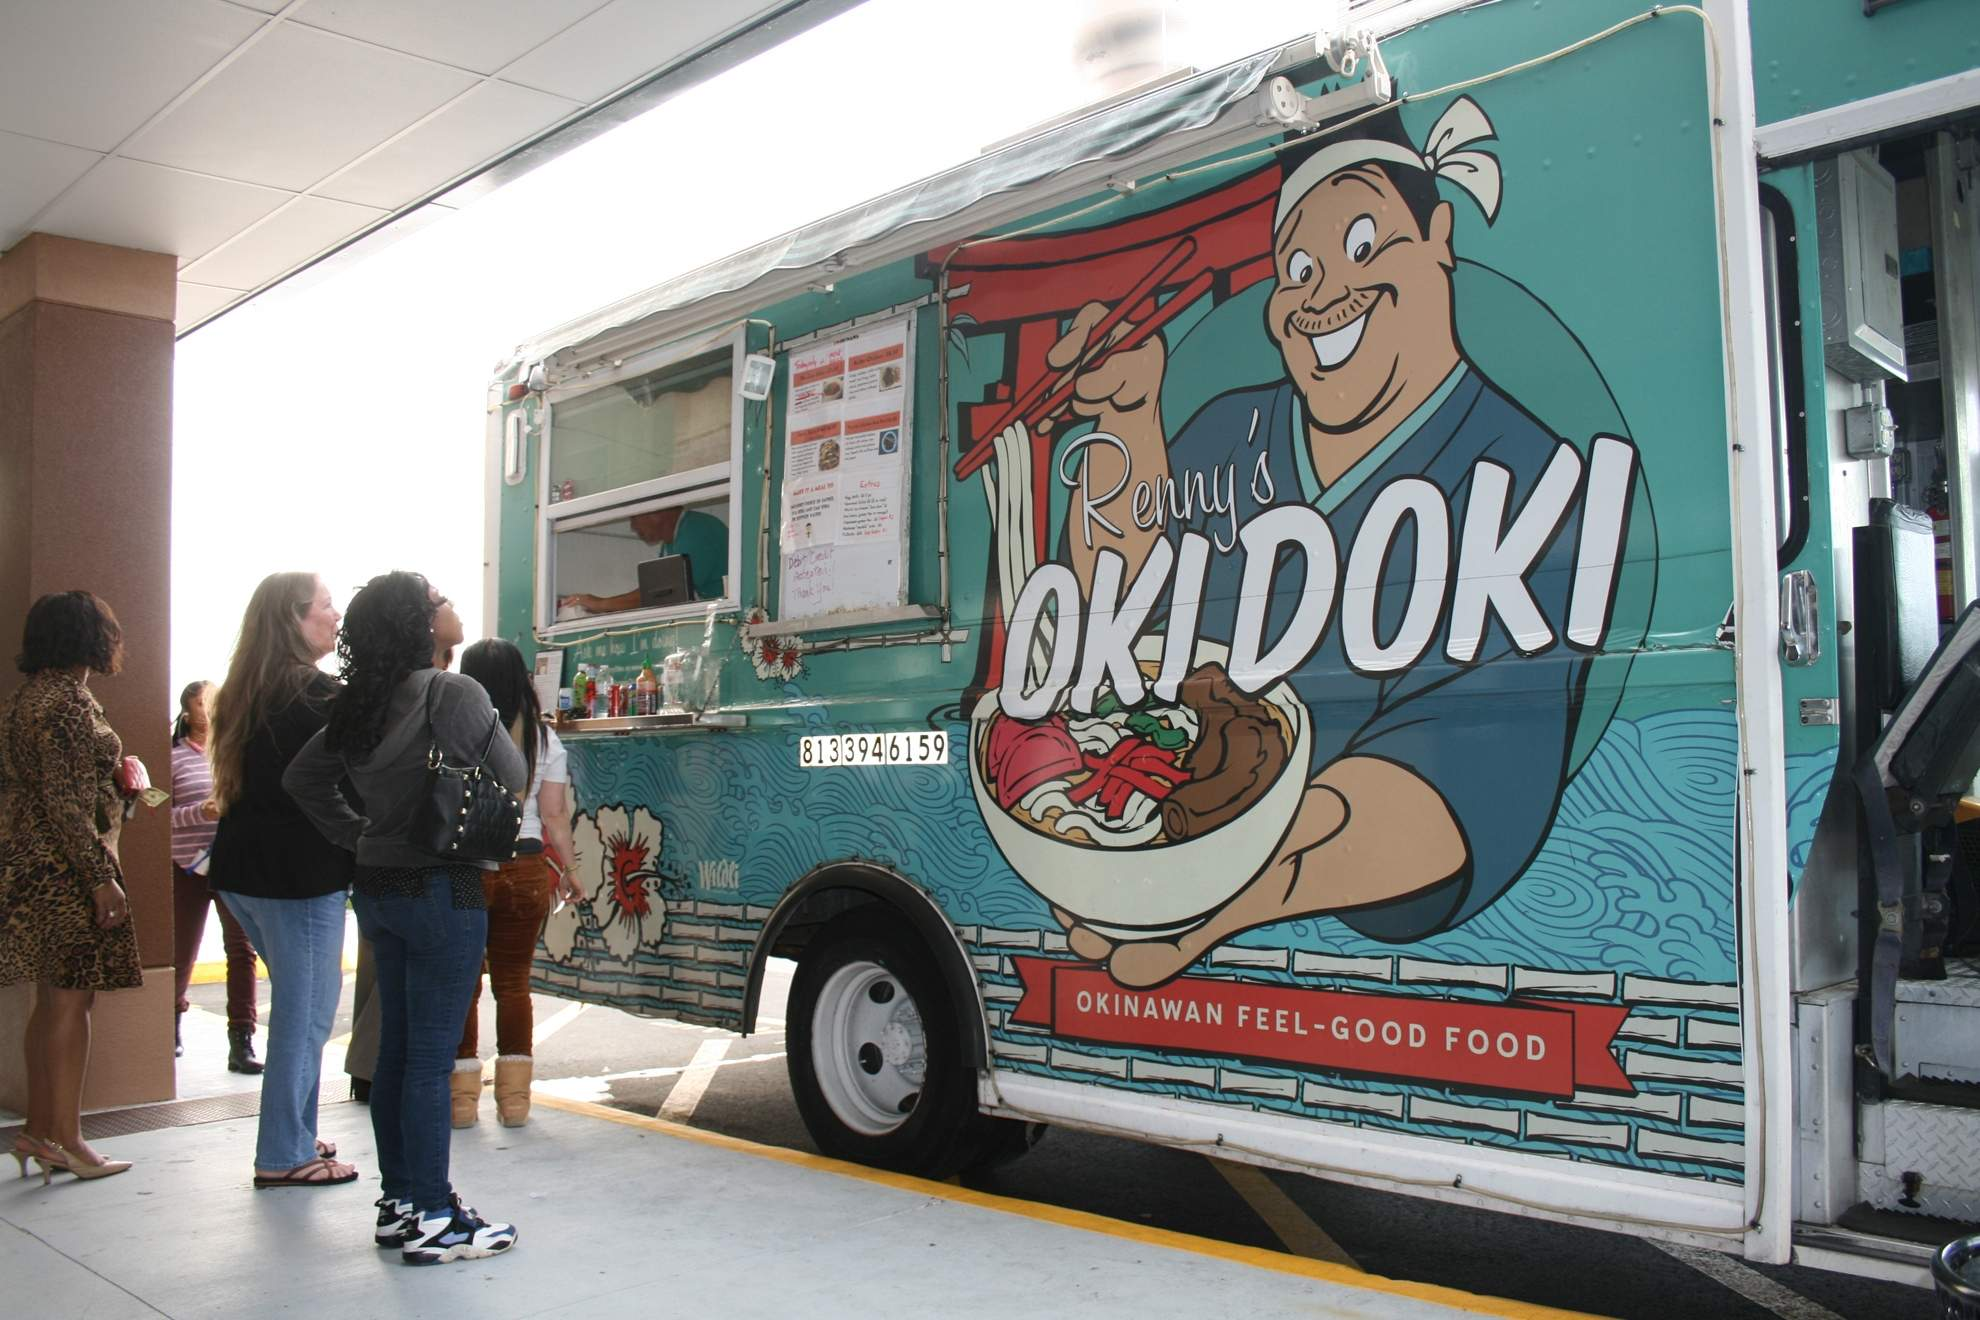 Tampa, FL: This food truck is Oki Doki with diners